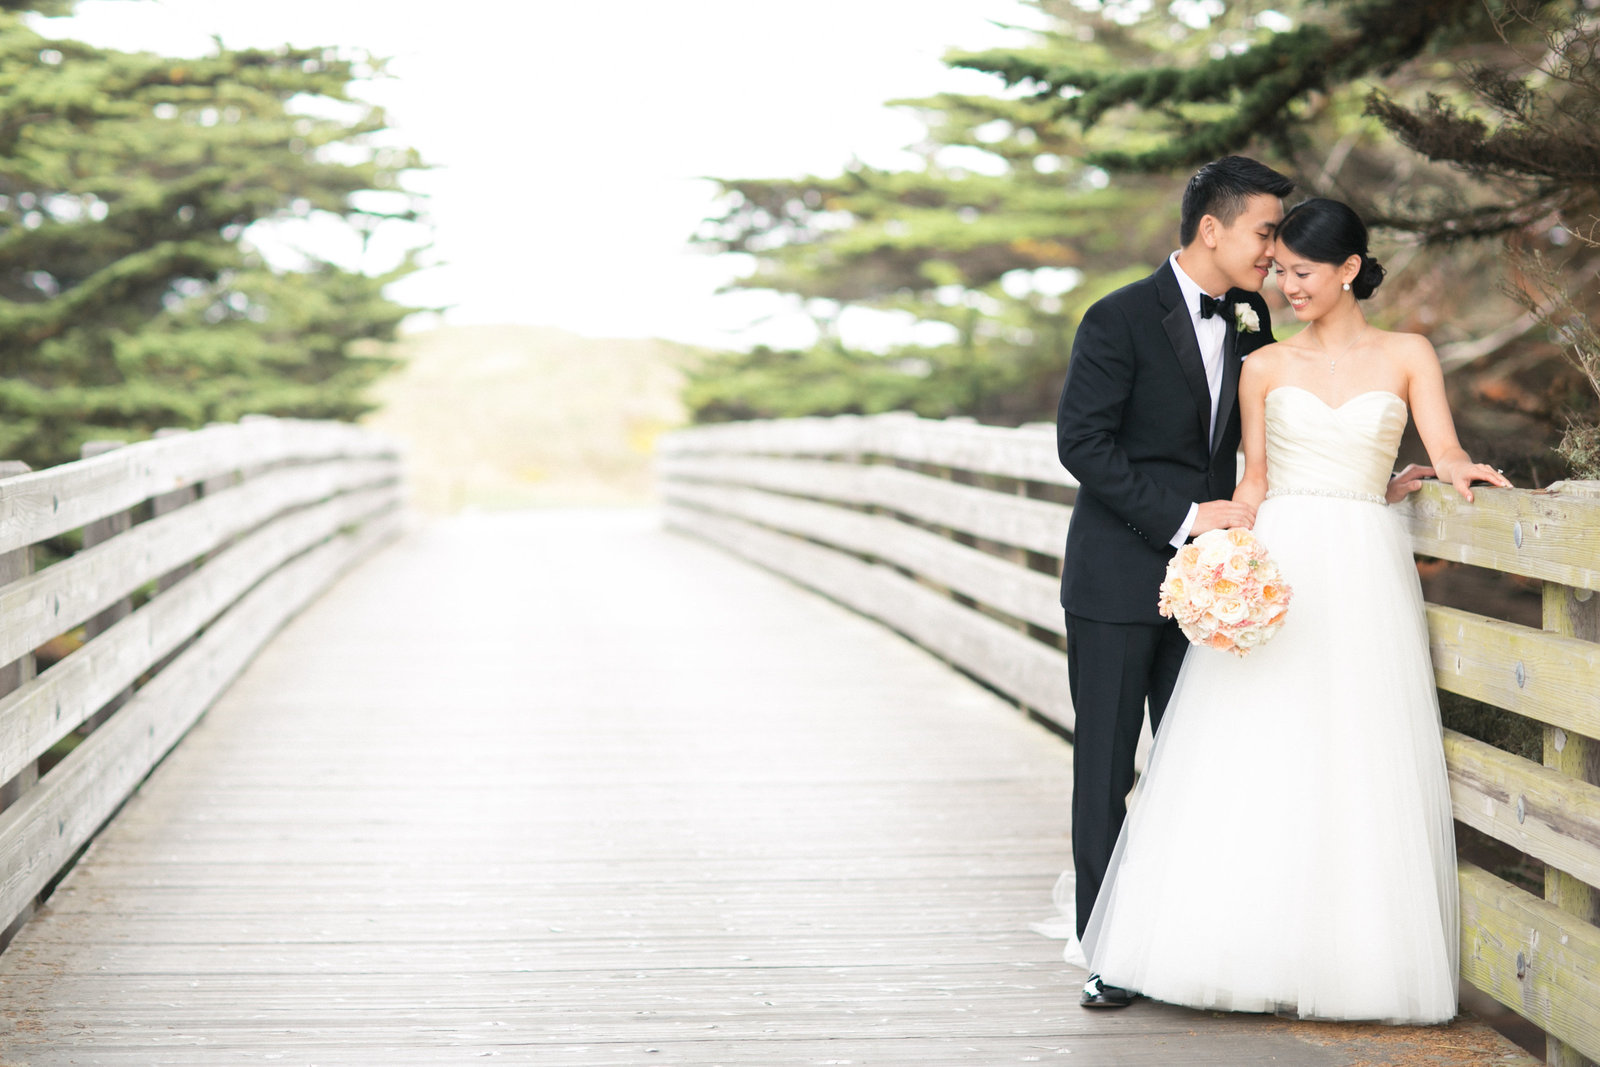 Wedding Photos- NYC Wedding Photographer-224